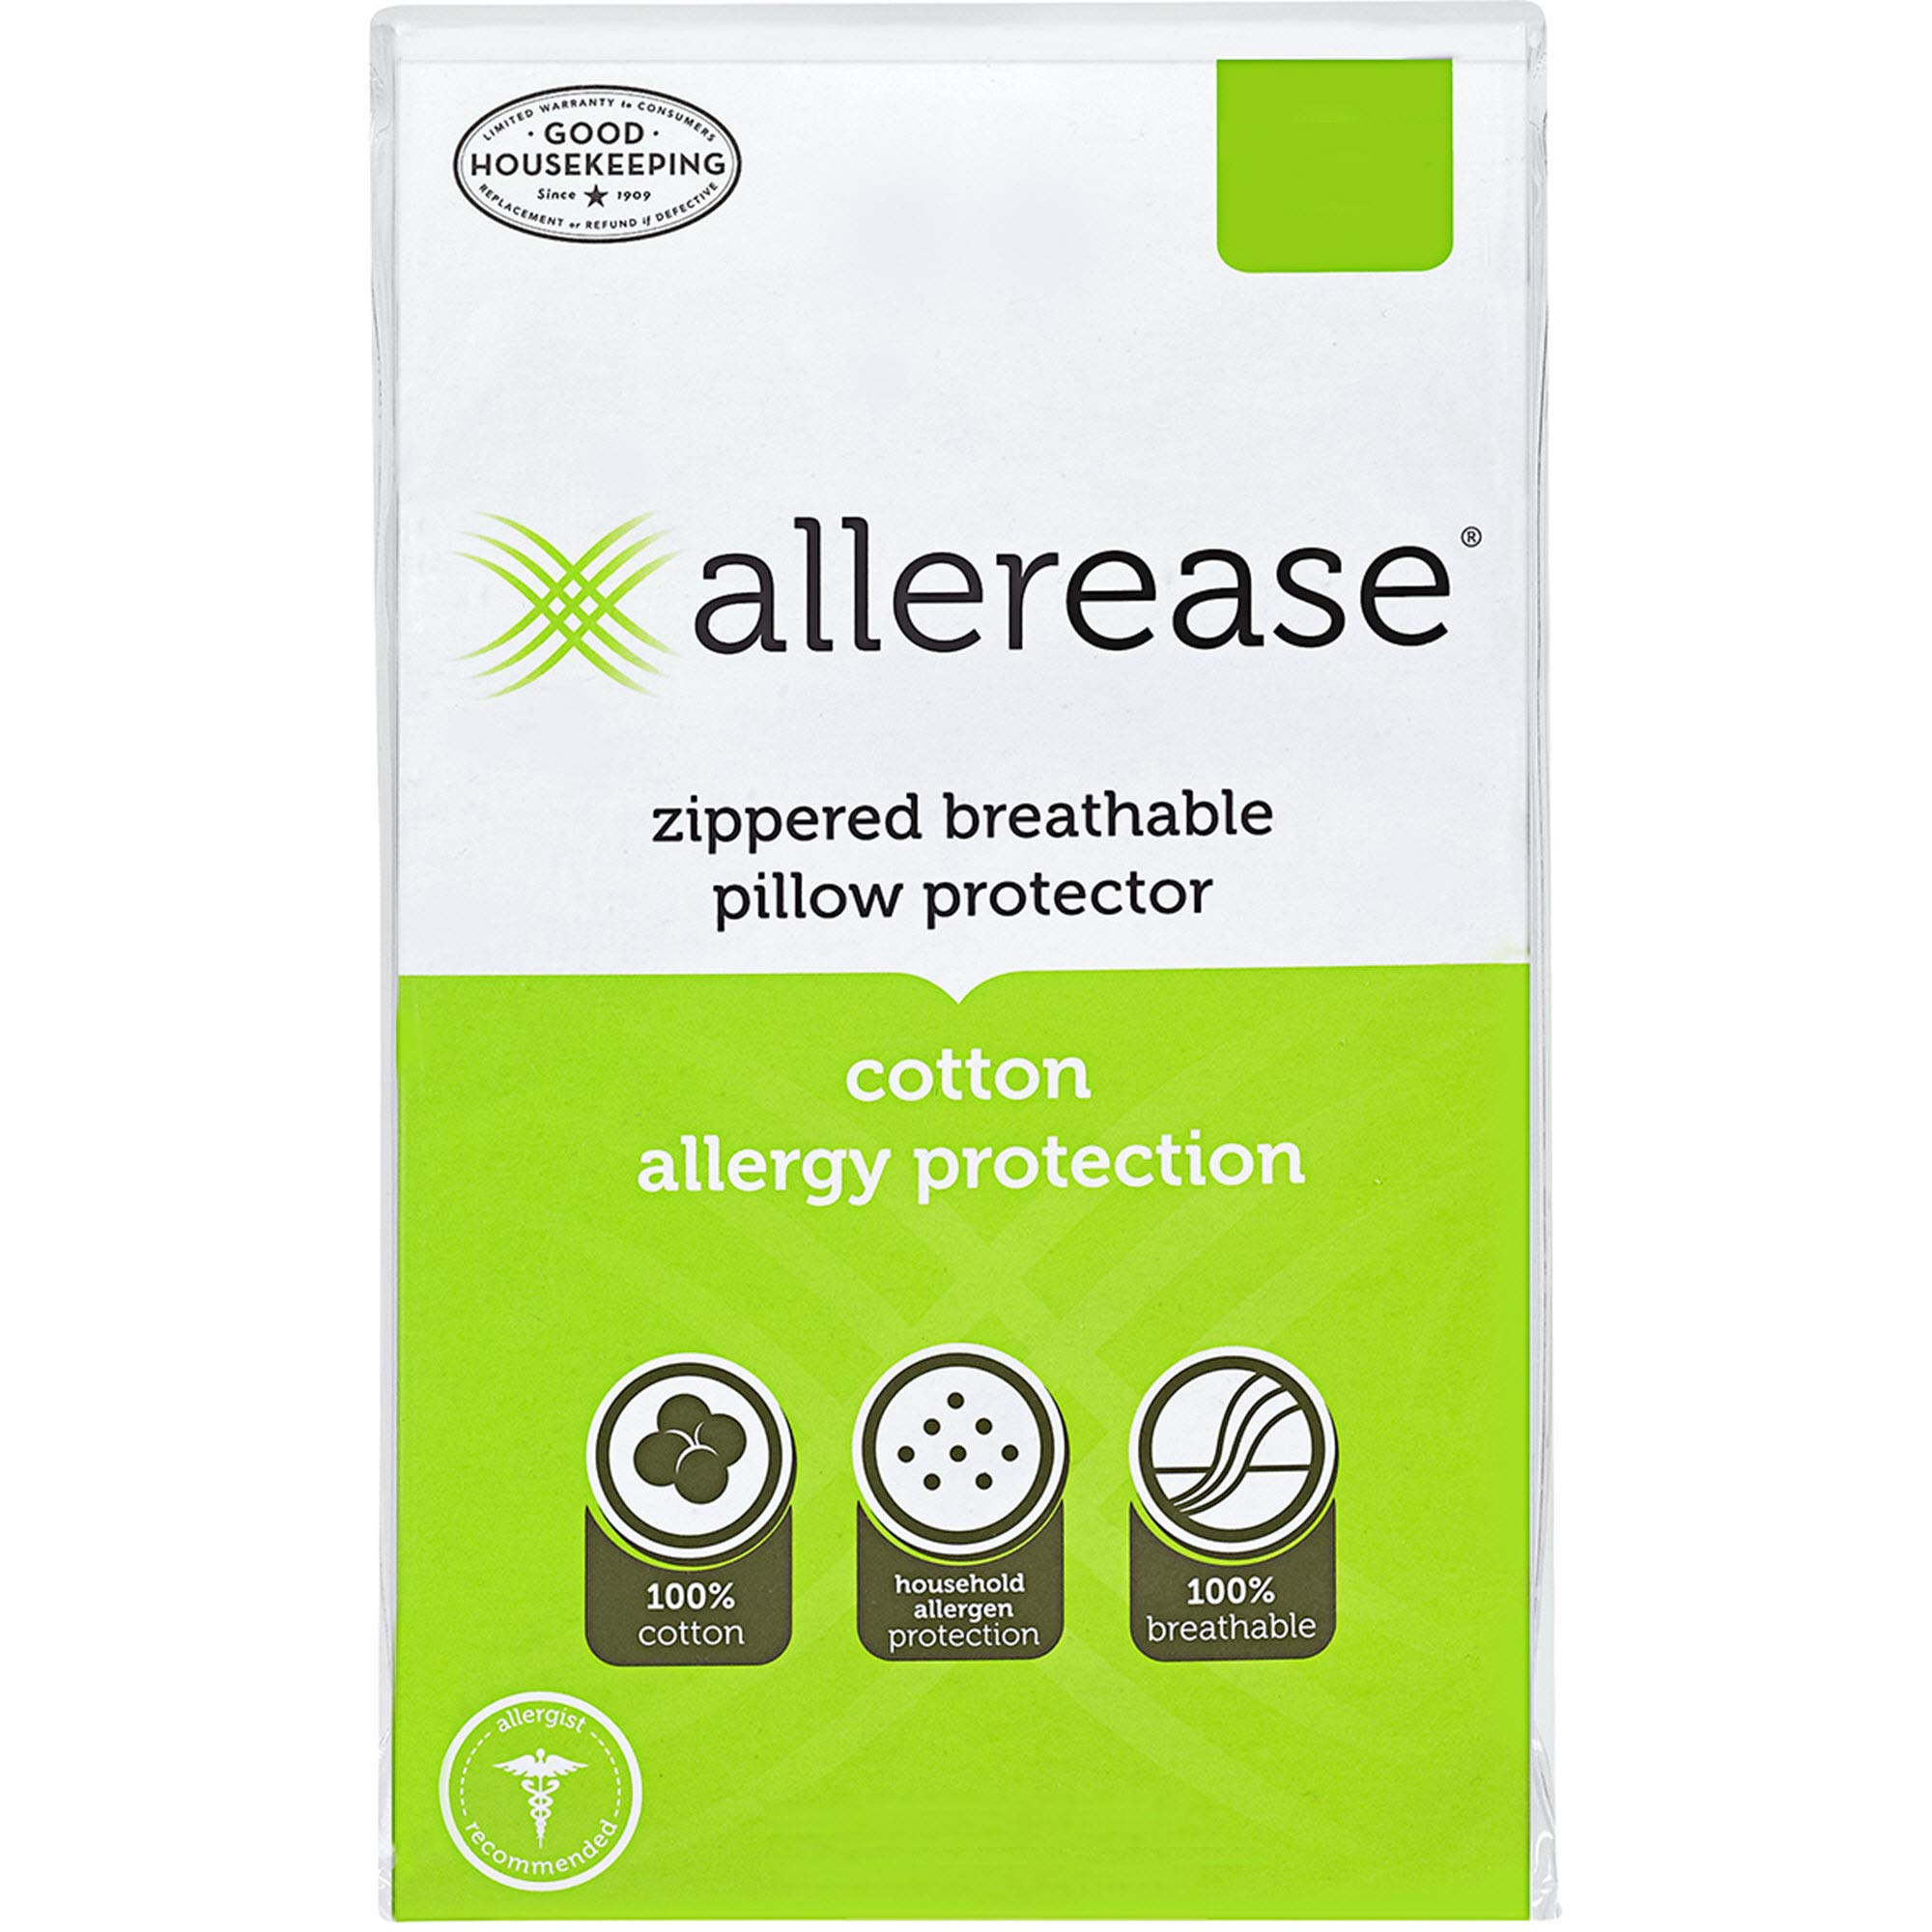 Aller-Ease AllerEase Cotton Allergy Protection, Standard, 4 Pack Pillow Protectors White